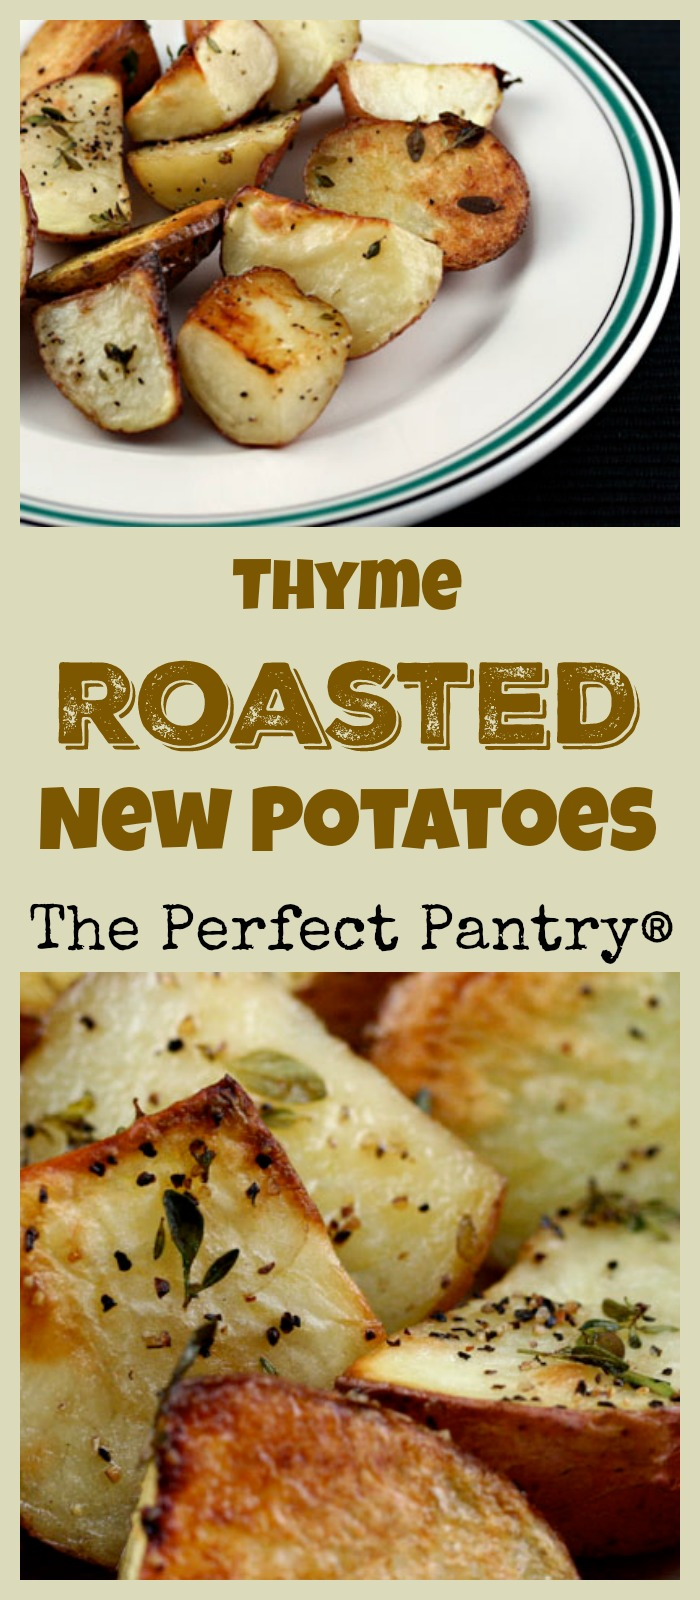 Thyme roasted new potatoes are the perfect side dish for roast chicken or steaks. #vegan #glutenfree